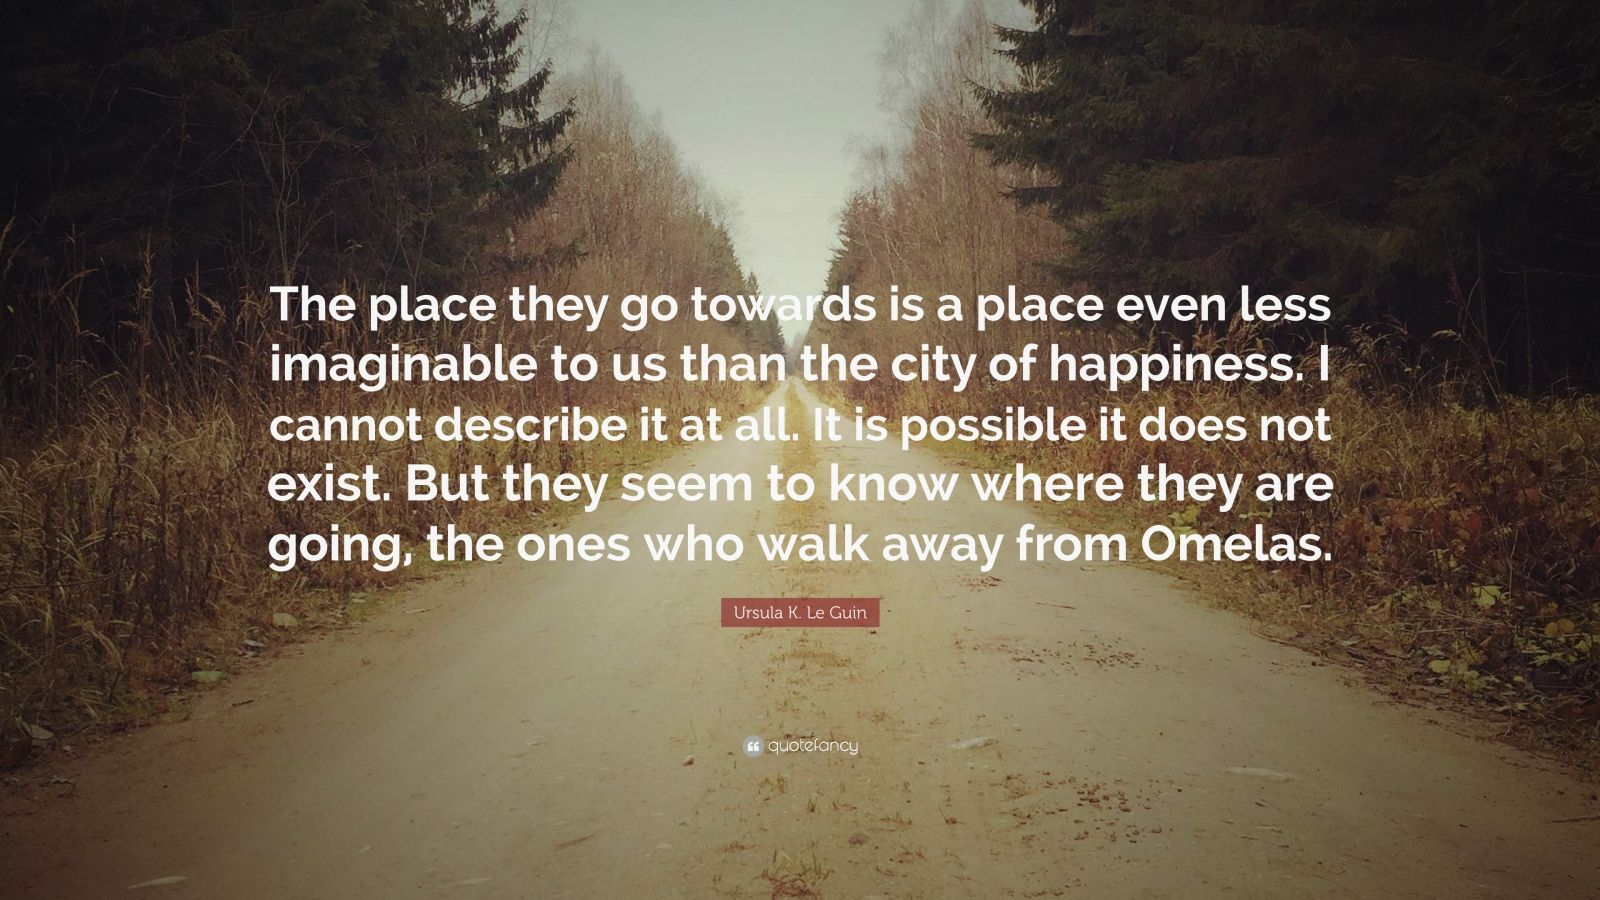 """Ursula K. Le Guin Quote: """"The place they go towards is a place even less imaginable to us than the city of happiness. I cannot describe it at all. It is possible it does not exist. But they seem to know where they are going, the ones who walk away from Omelas."""""""